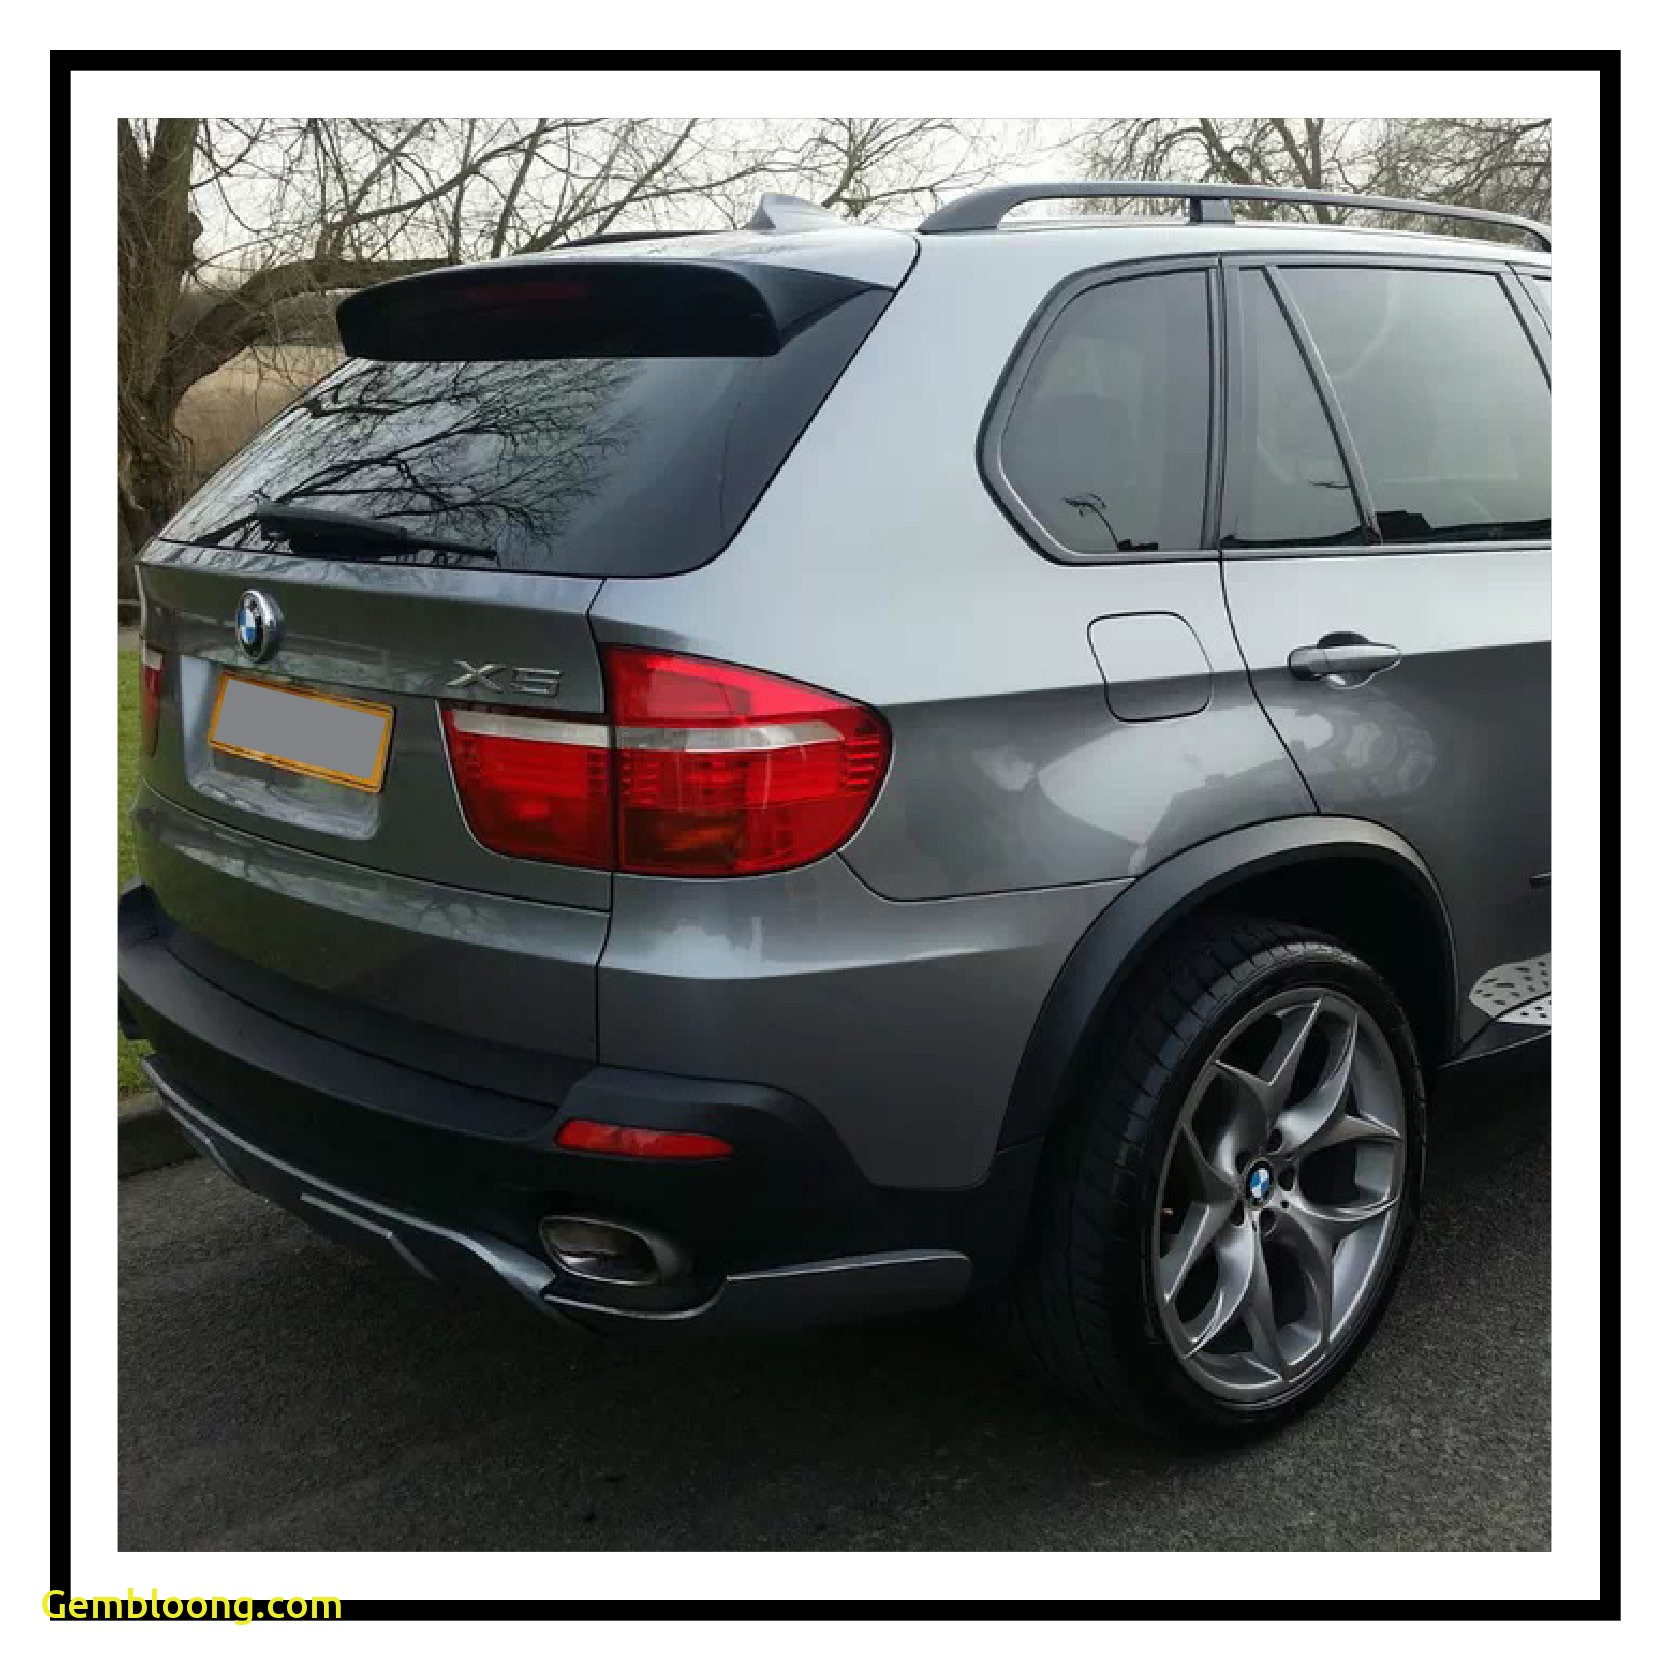 Bmw 2008 Elegant 2008 Bmw E70 X5 3 0d Stage 1 and Full Dpf Removal